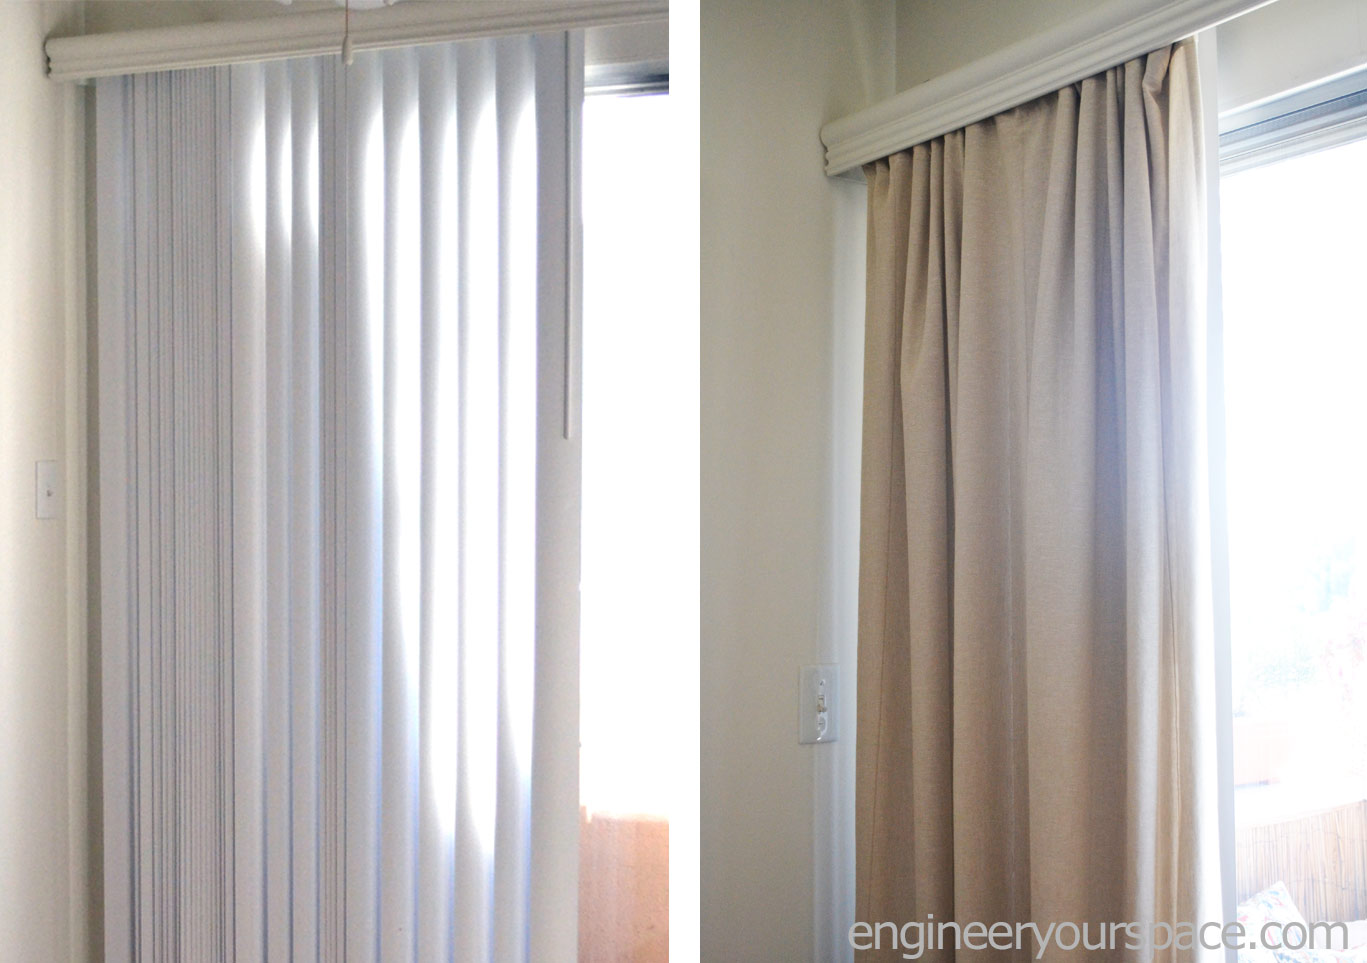 How To Conceal Vertical Blinds With Curtains